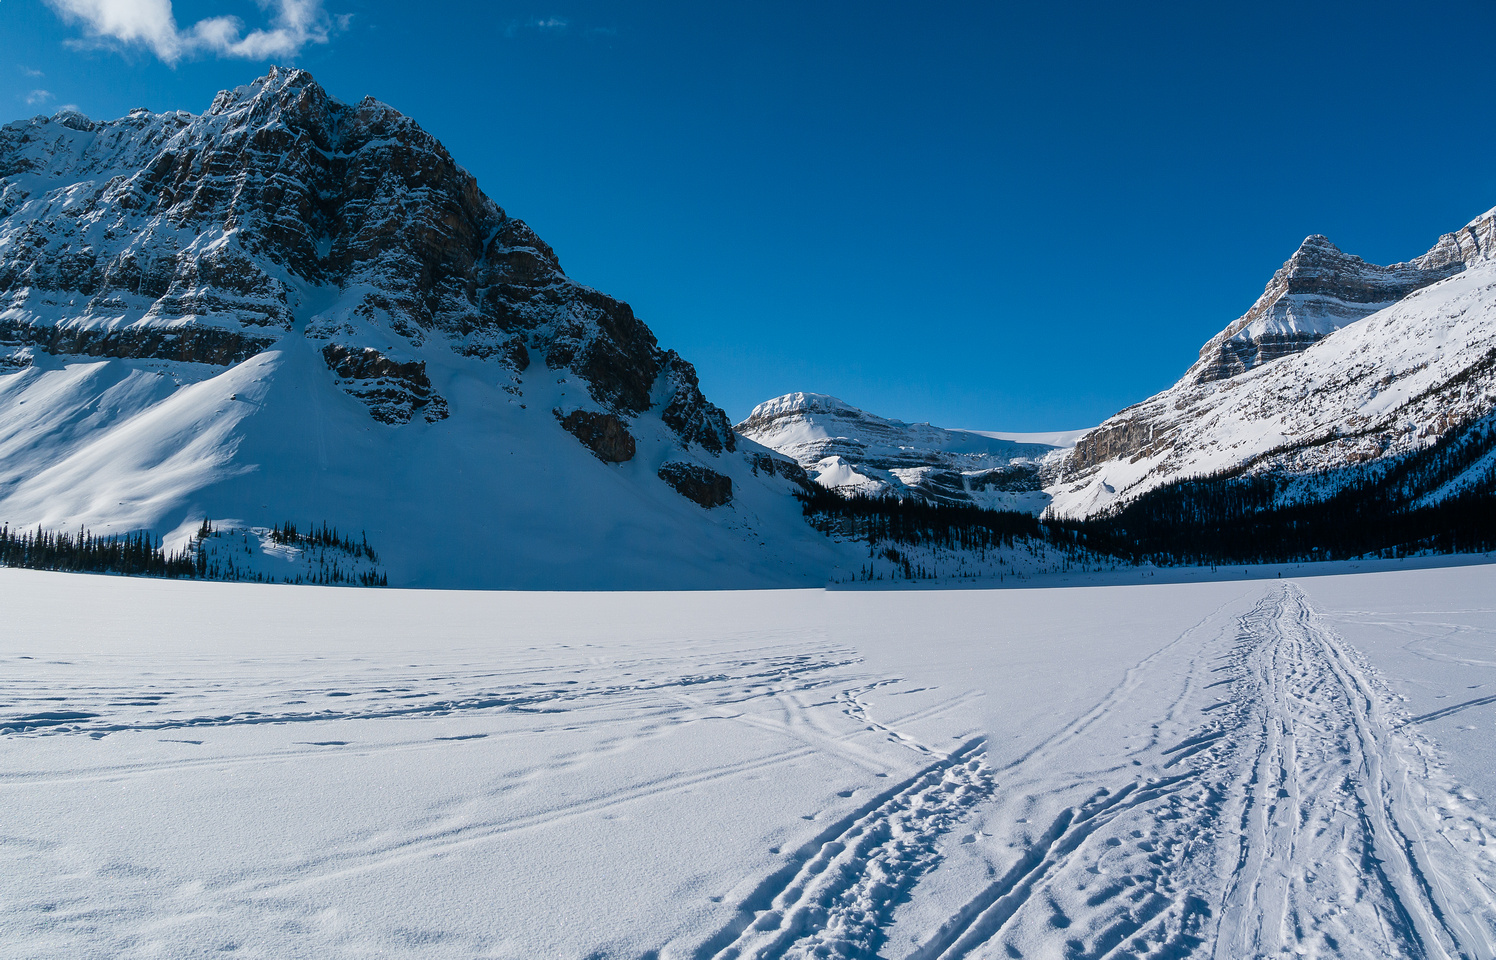 I've spent many winter mornings skiing across Bow Lake and it's usually pretty darn frosty - this day was no exception.